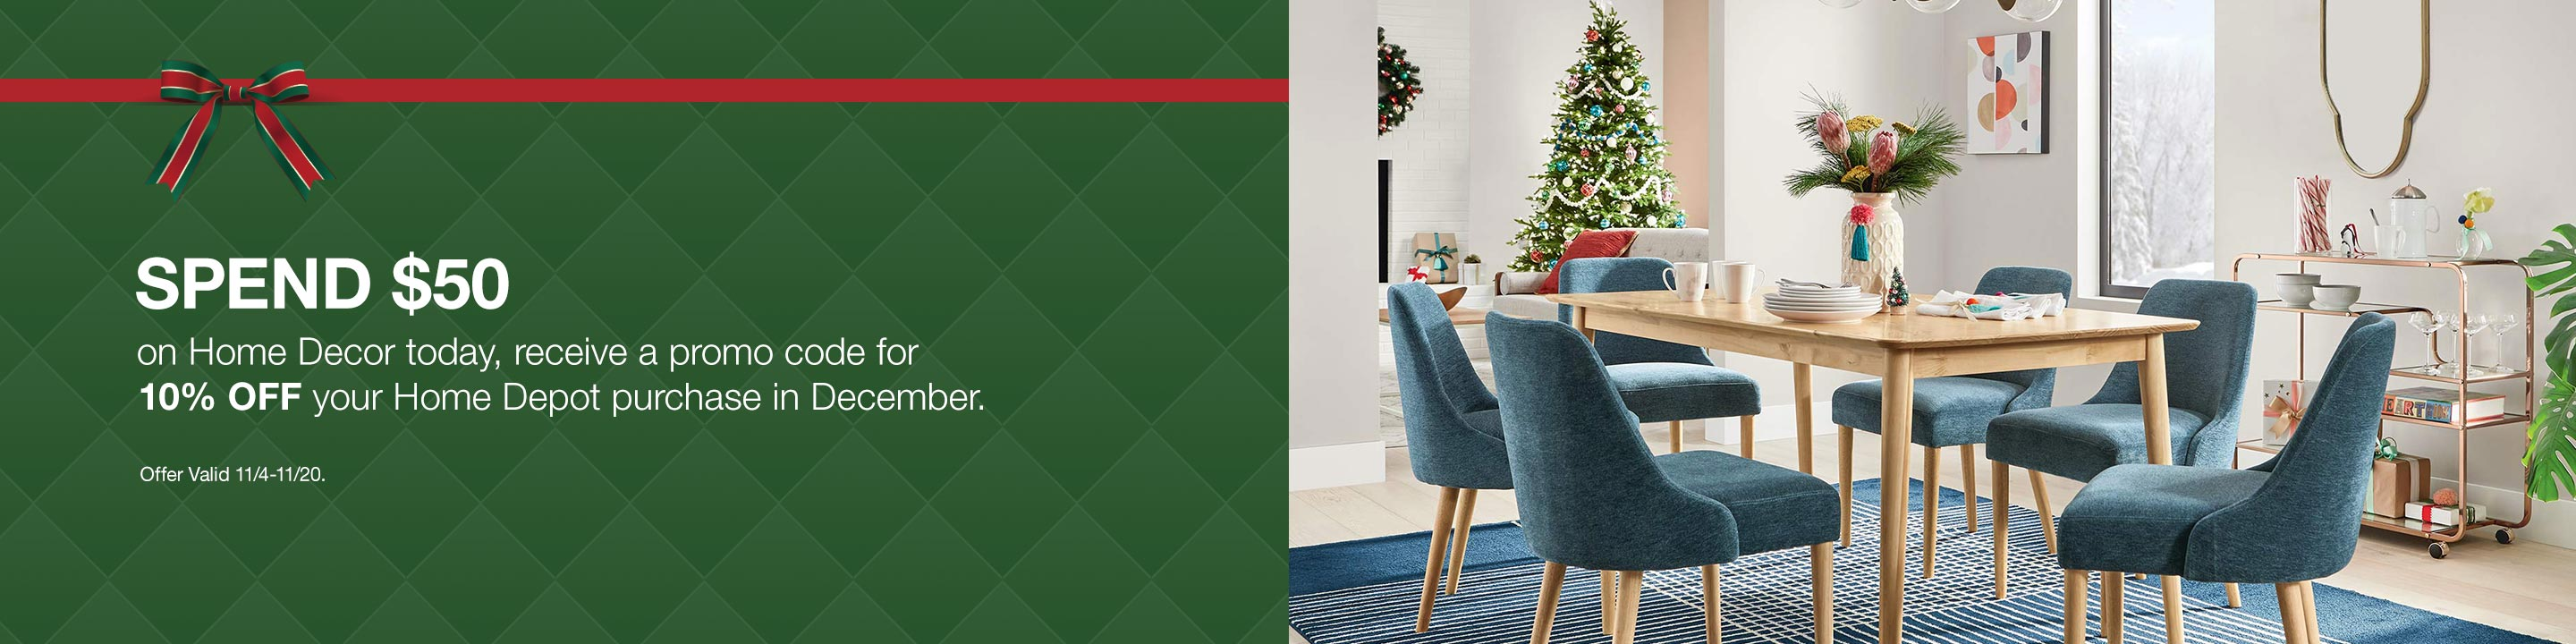 Spend $50 on Home Decor today, receive a promo code 10% off your Home Decor purchase in December